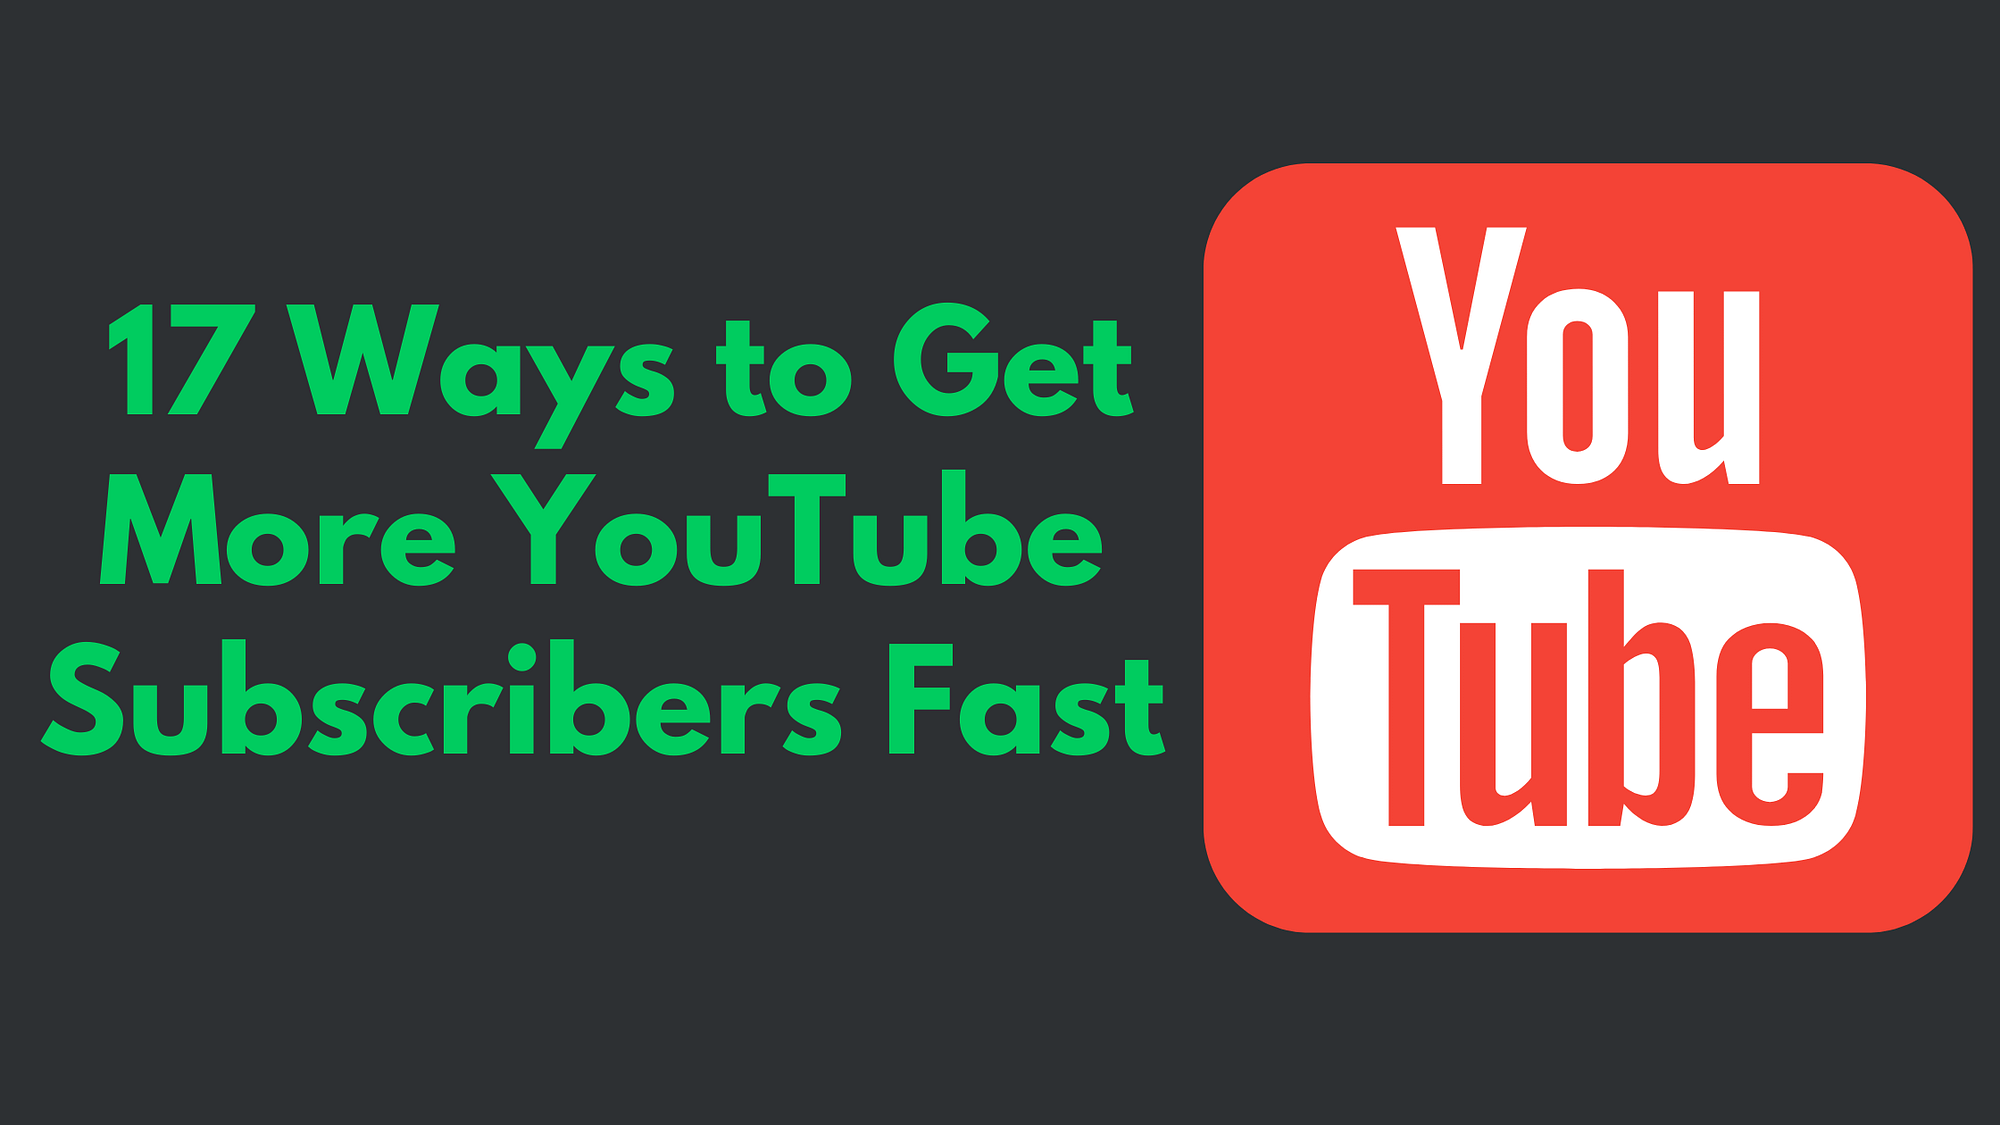 17 Ways to get more YouTube Subscribers Fast